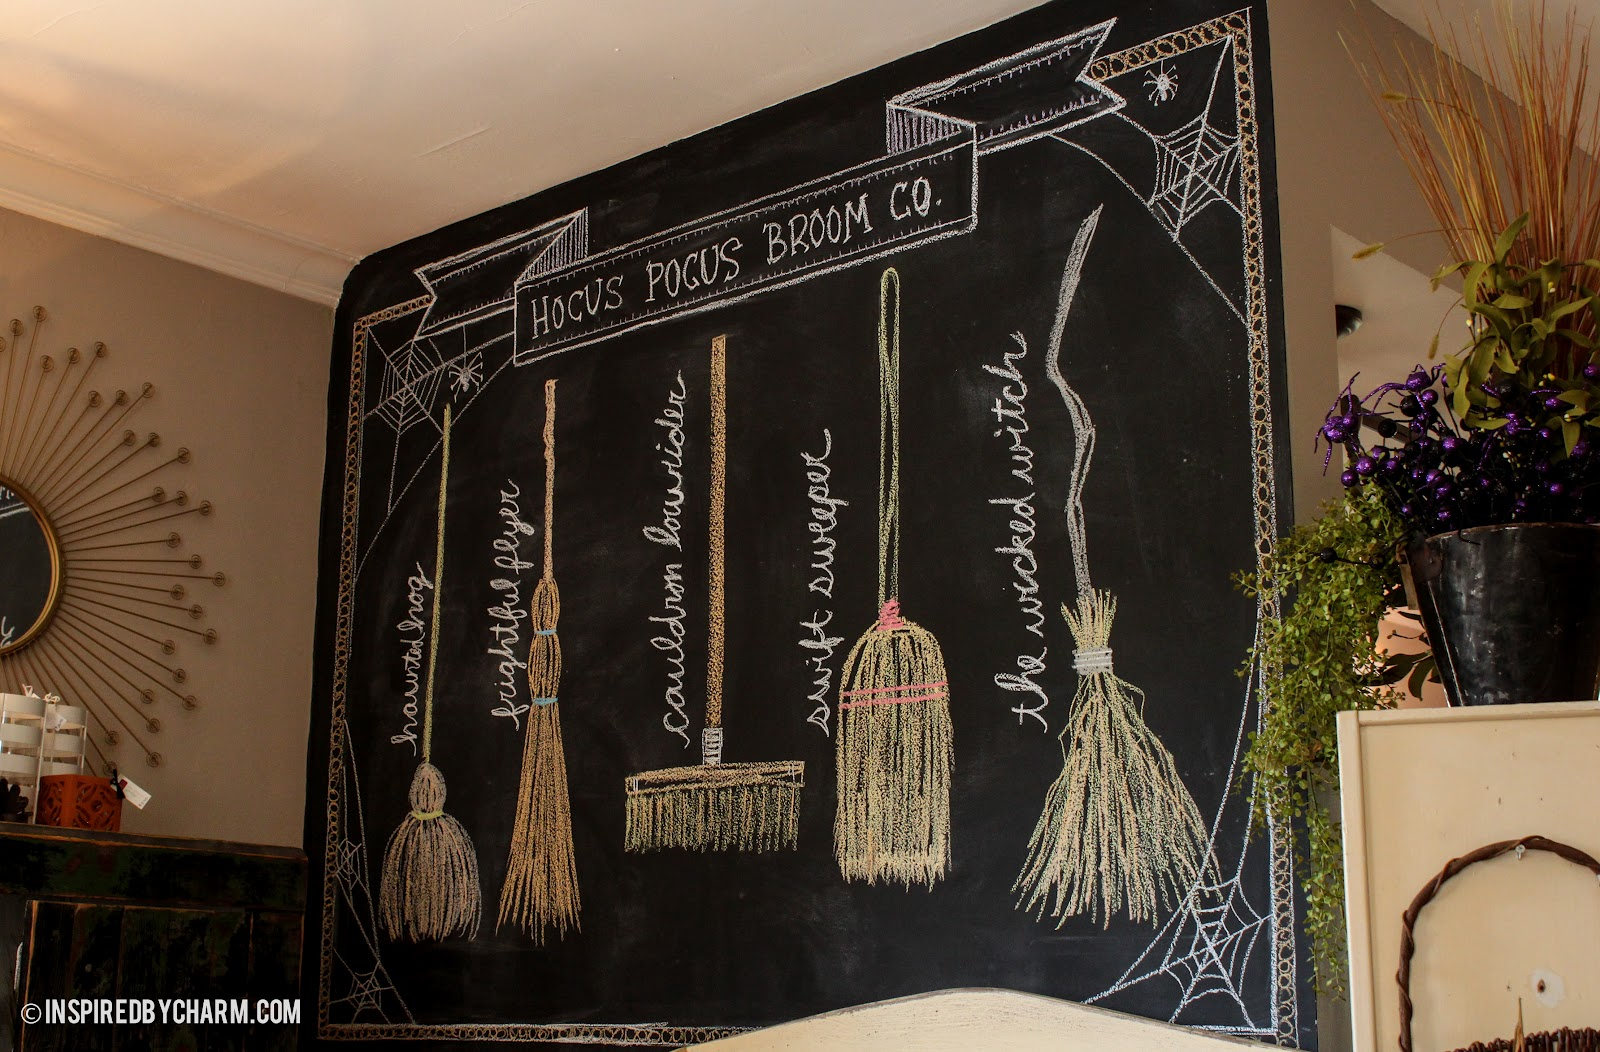 hocus pocus broom co. Black Bedroom Furniture Sets. Home Design Ideas